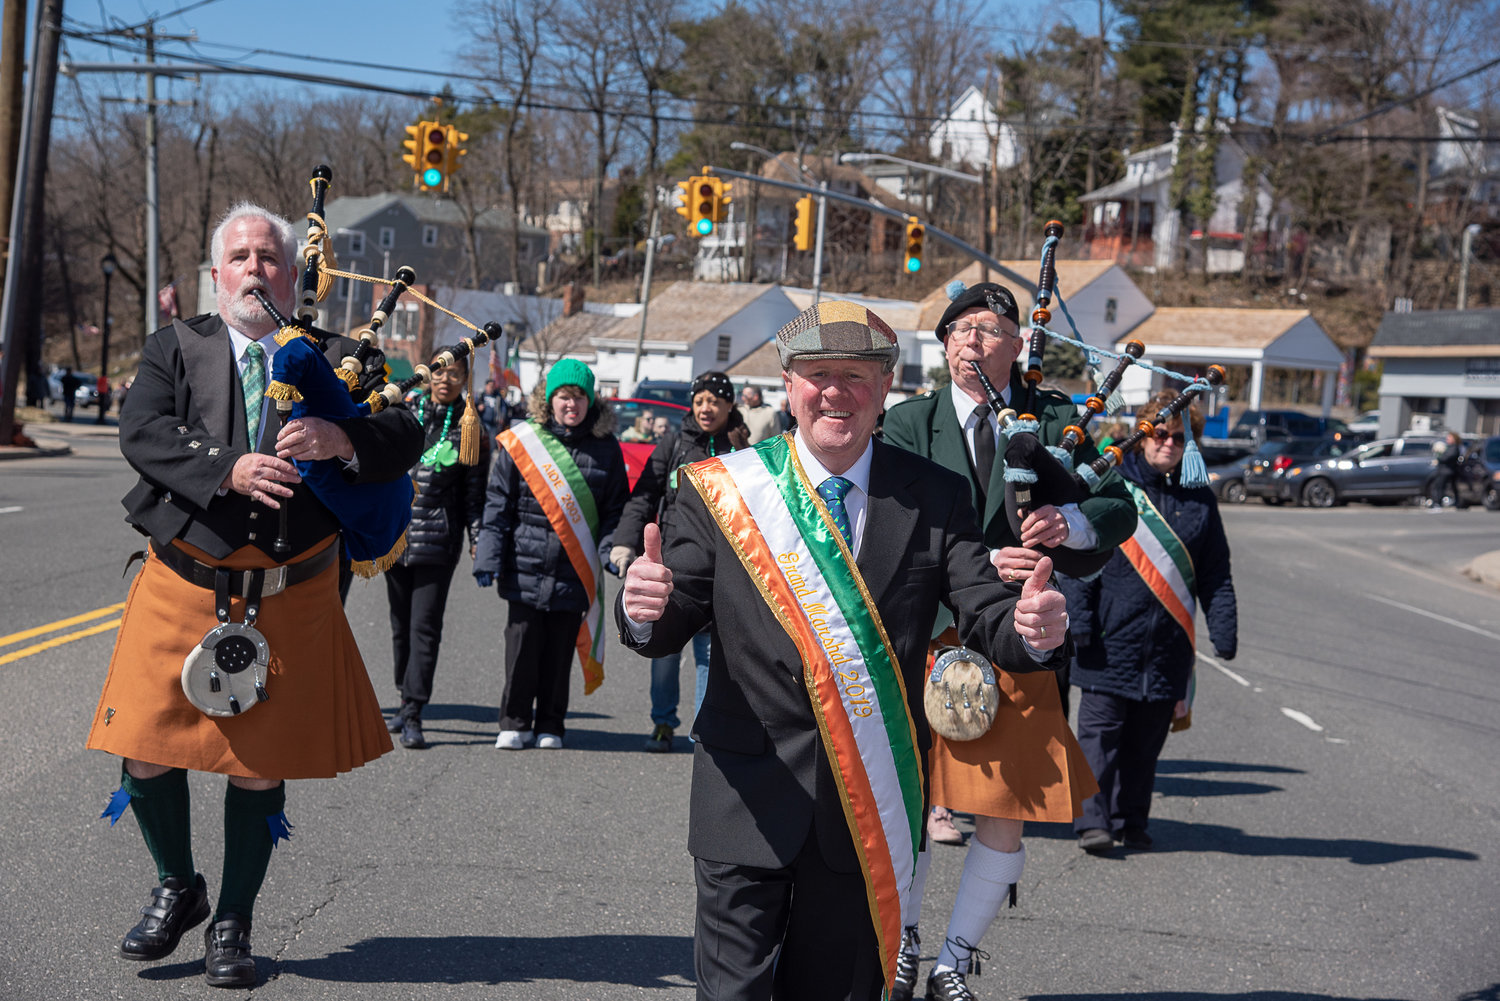 Parade Grand Marshal Patrick Furlong's exuberance set the tone for the St. Patrick's Day Parade in Glen Cove on Sunday.